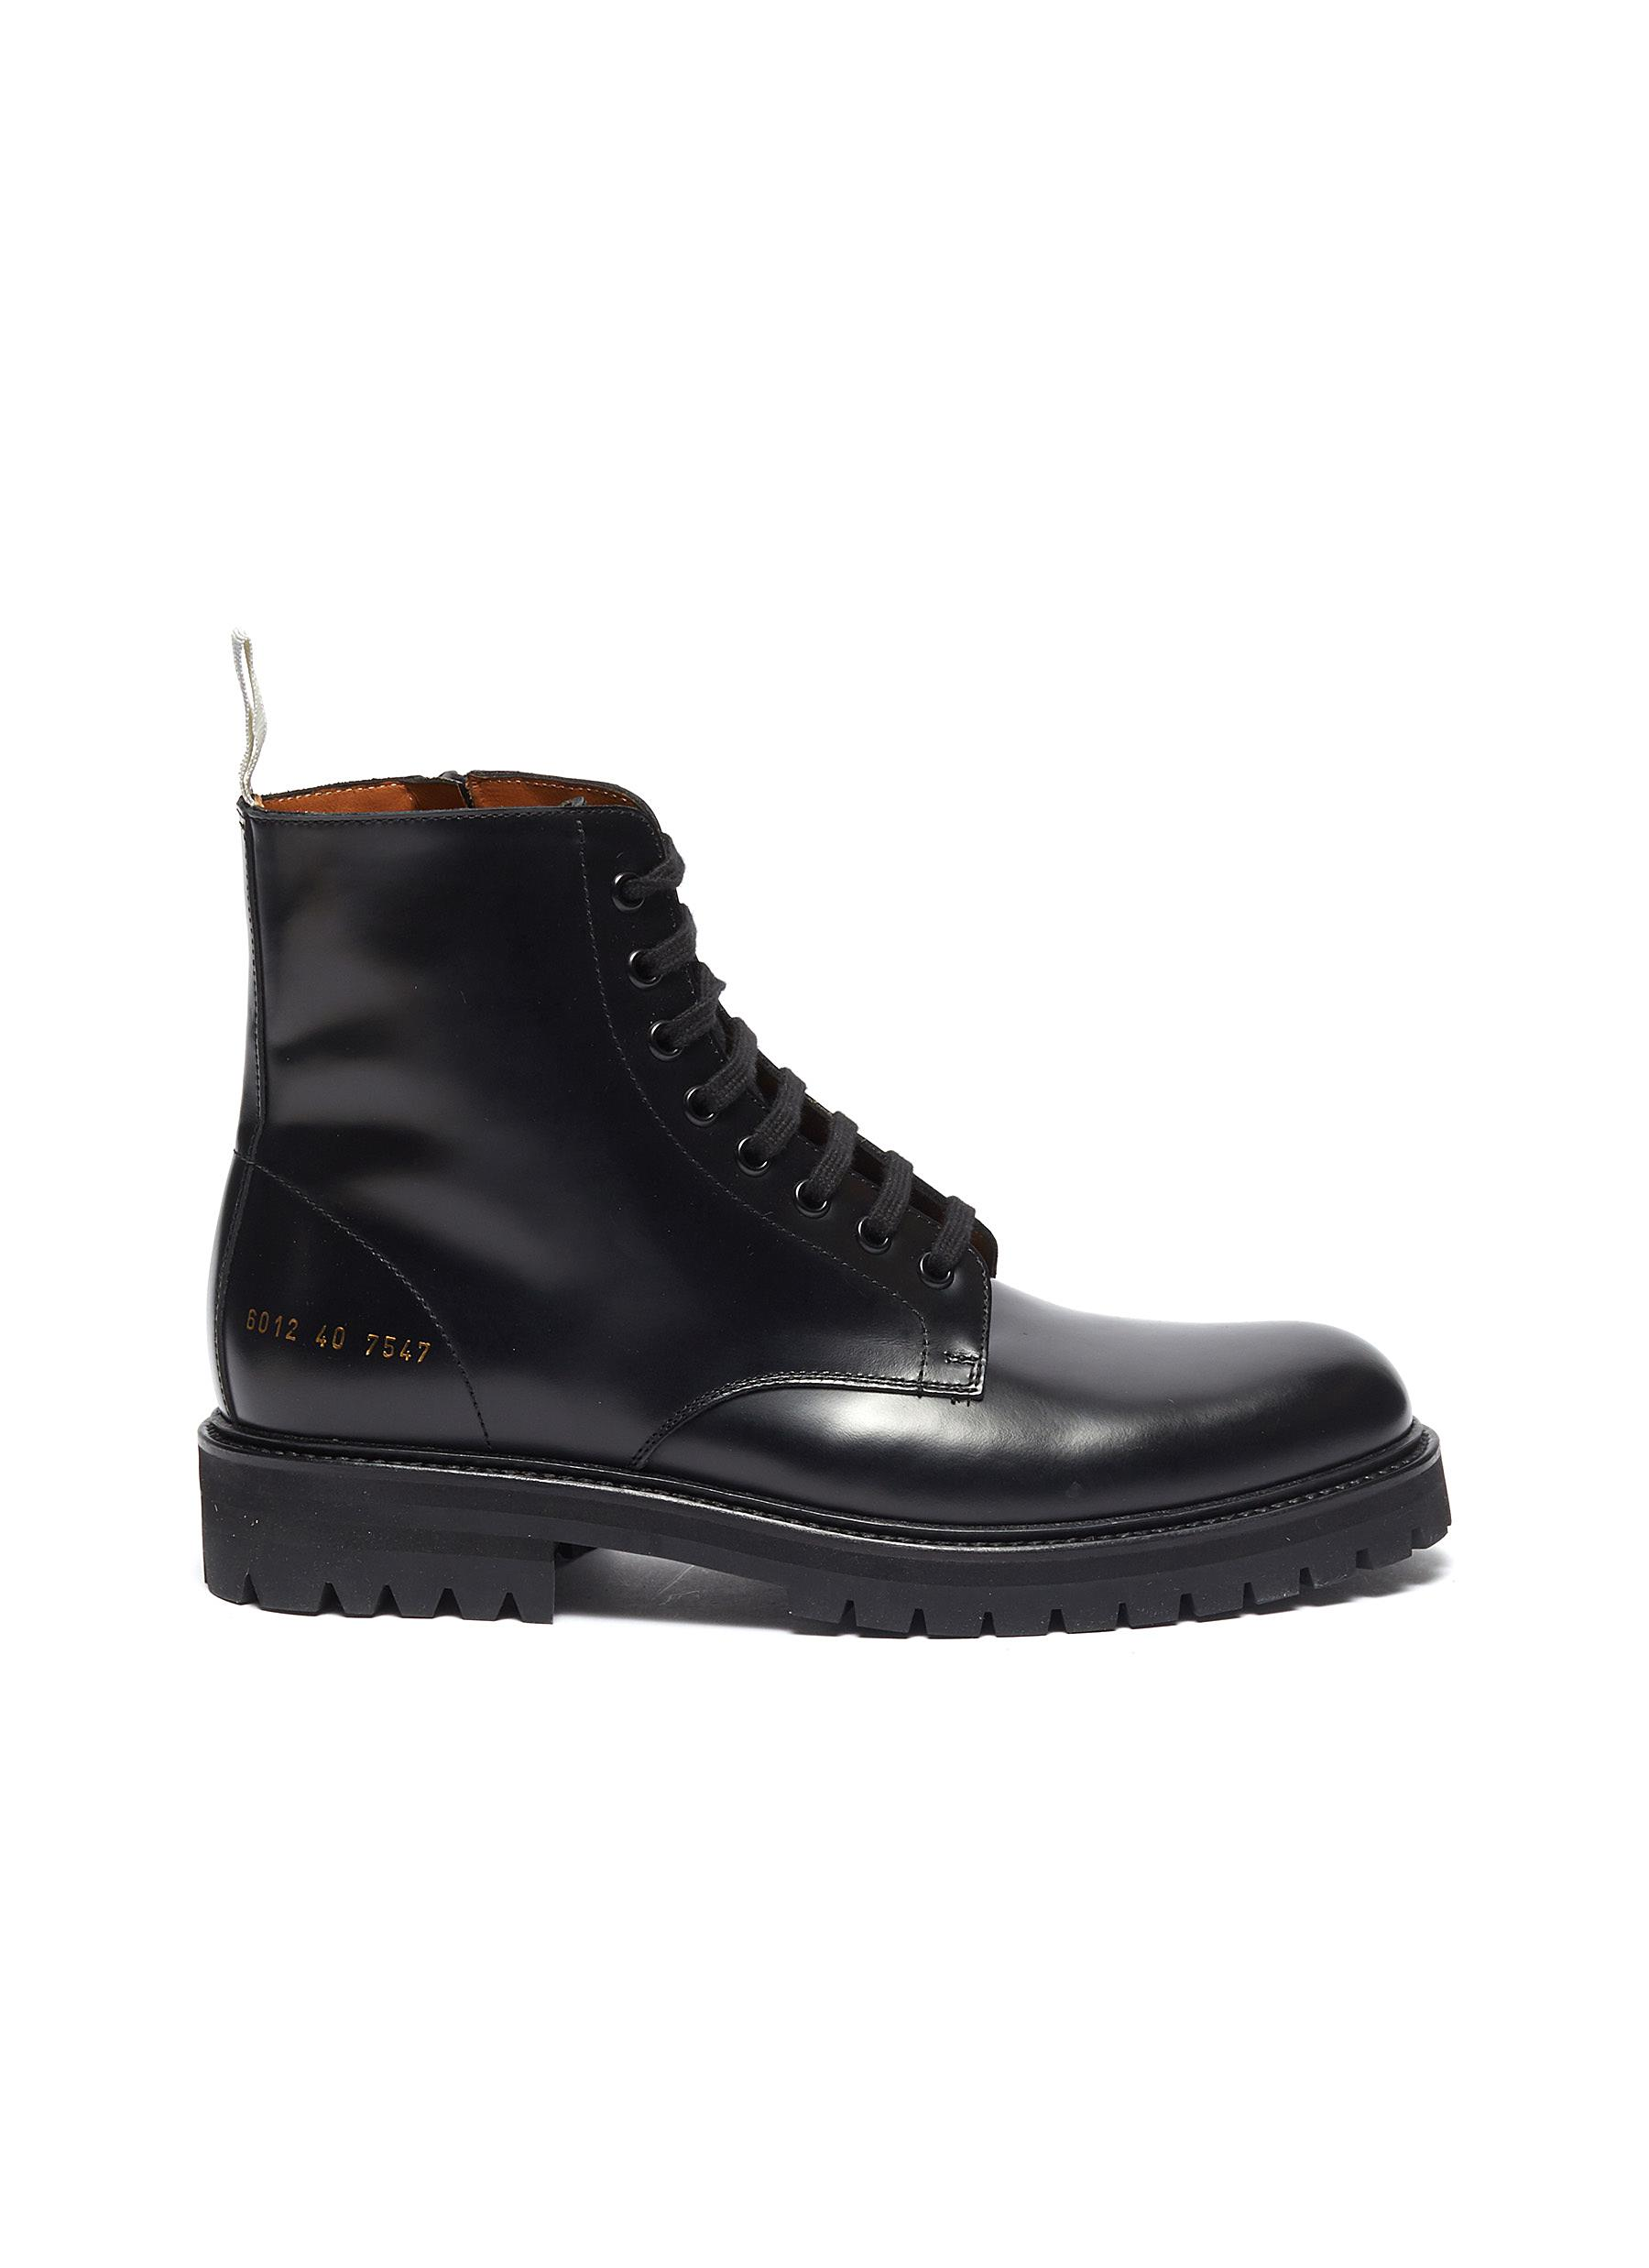 Standard leather combat boots by Common Projects